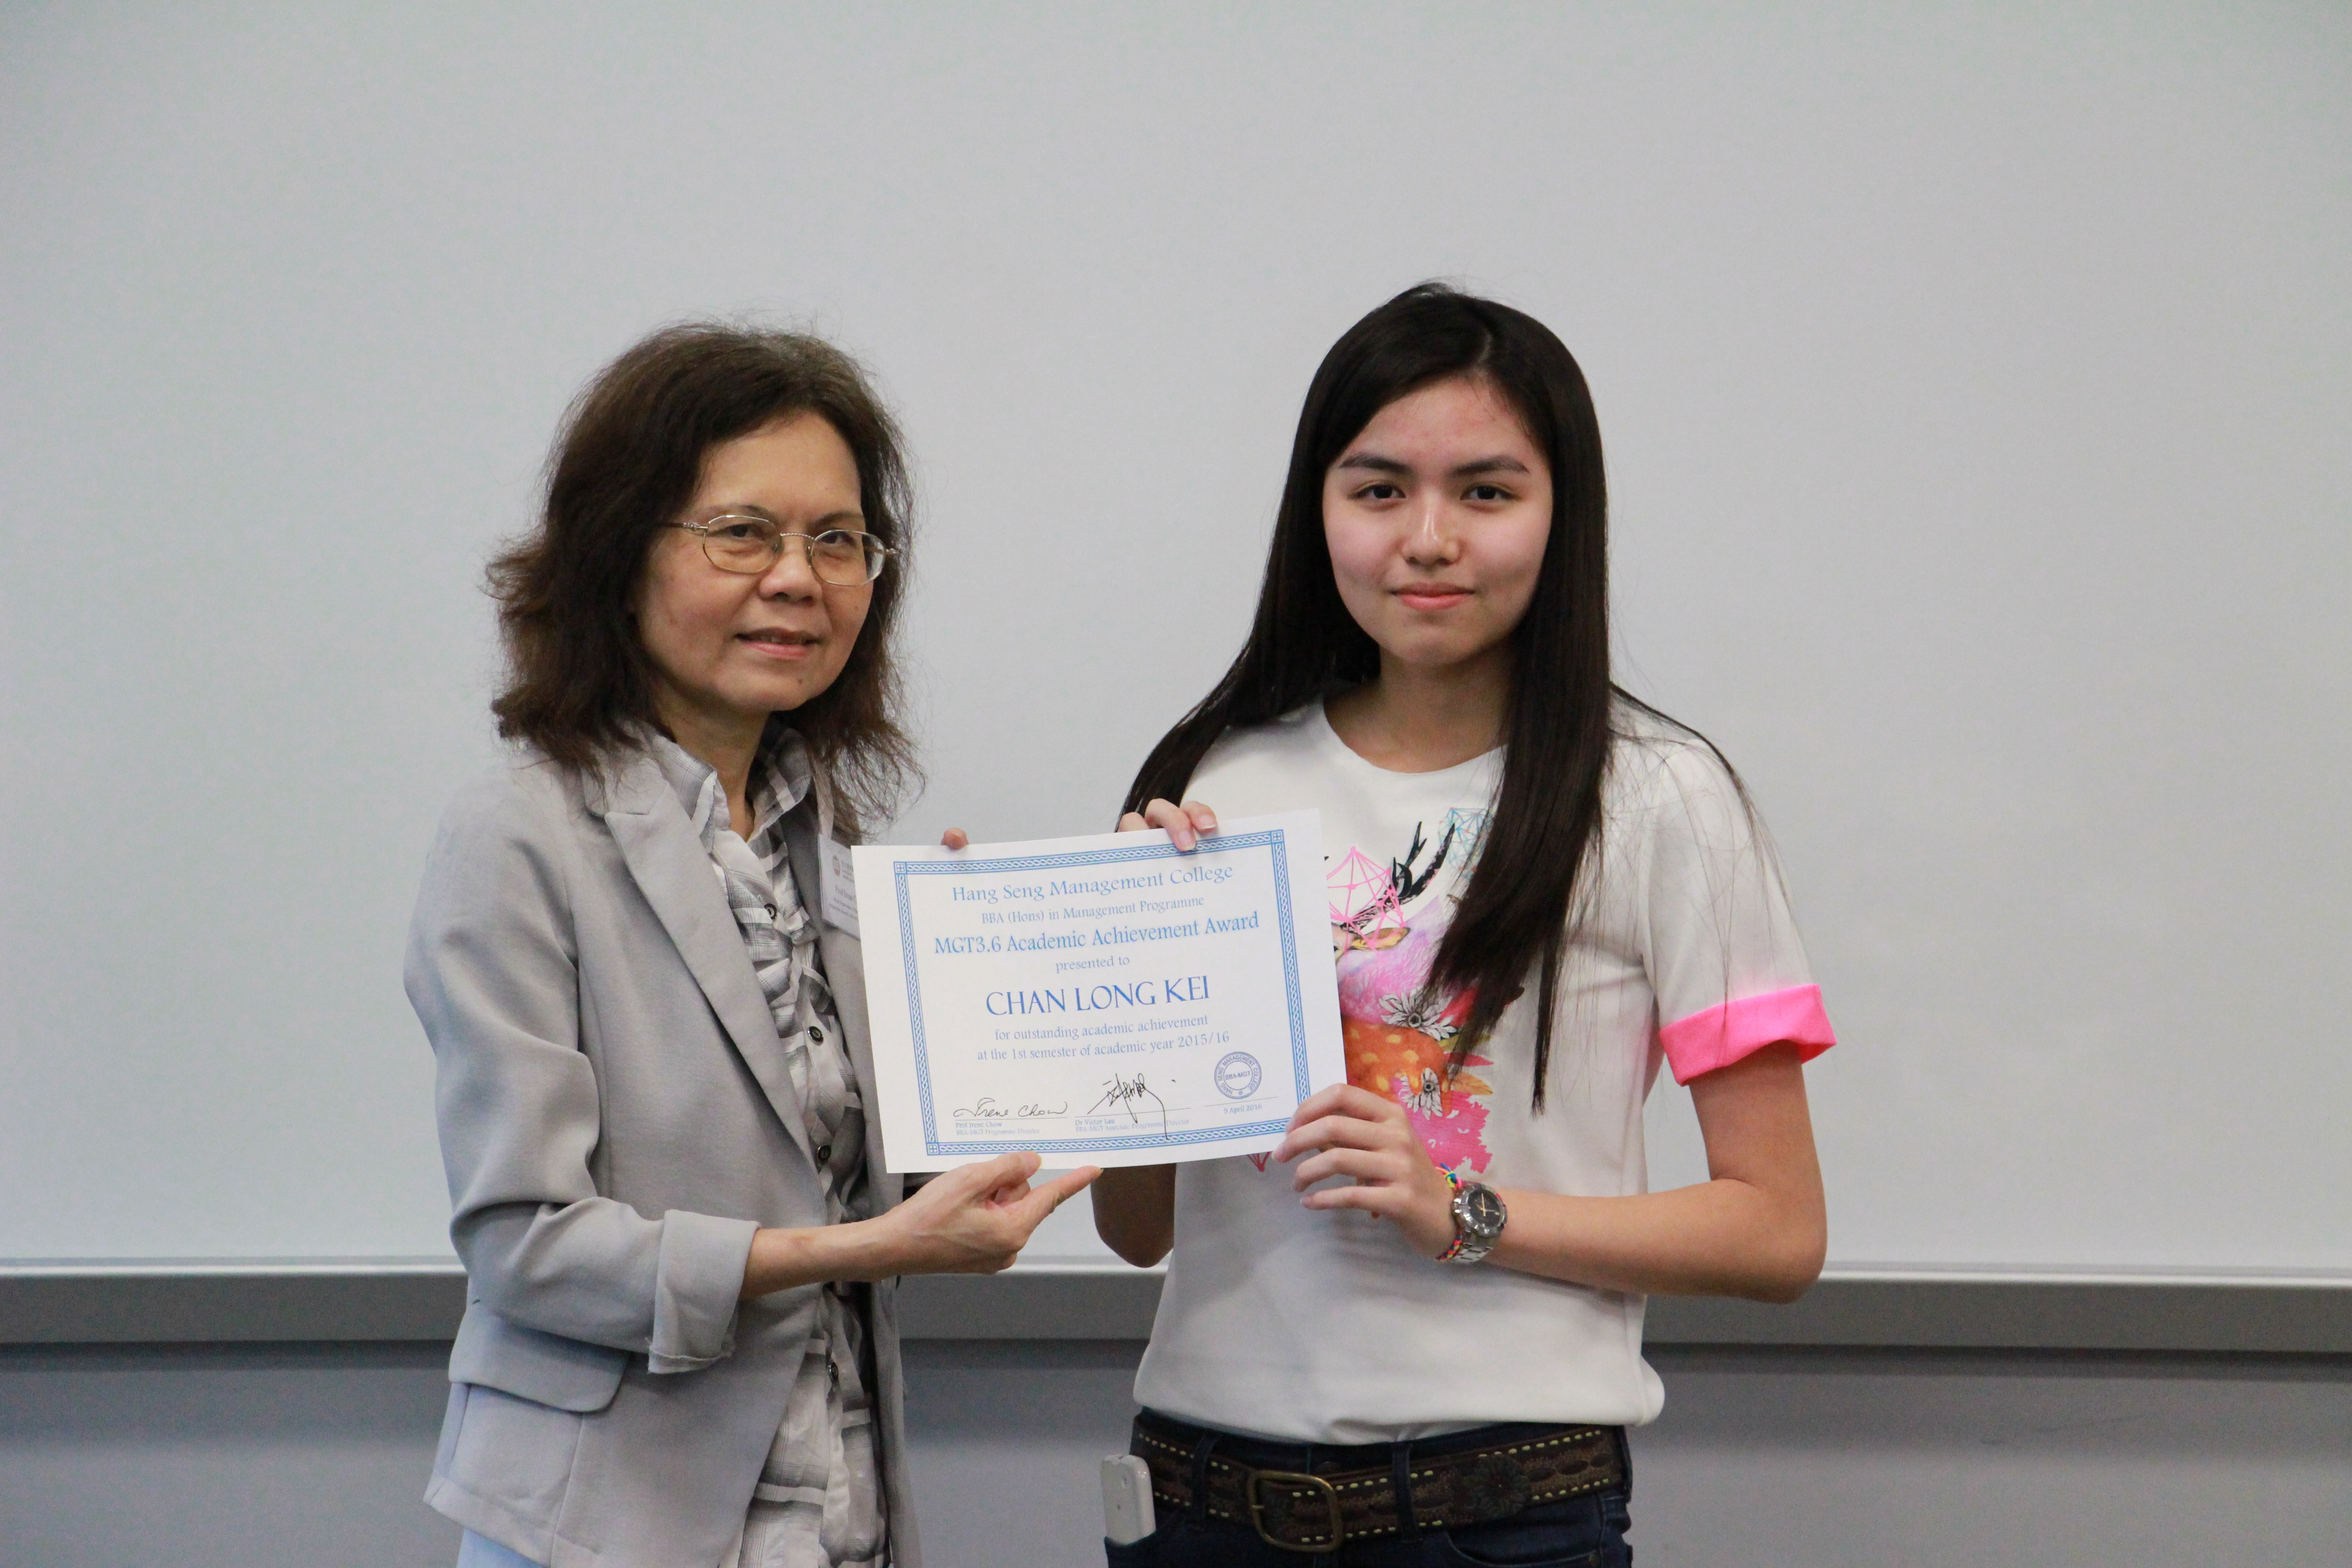 Prof Chow congratulates on her outstanding achievements.